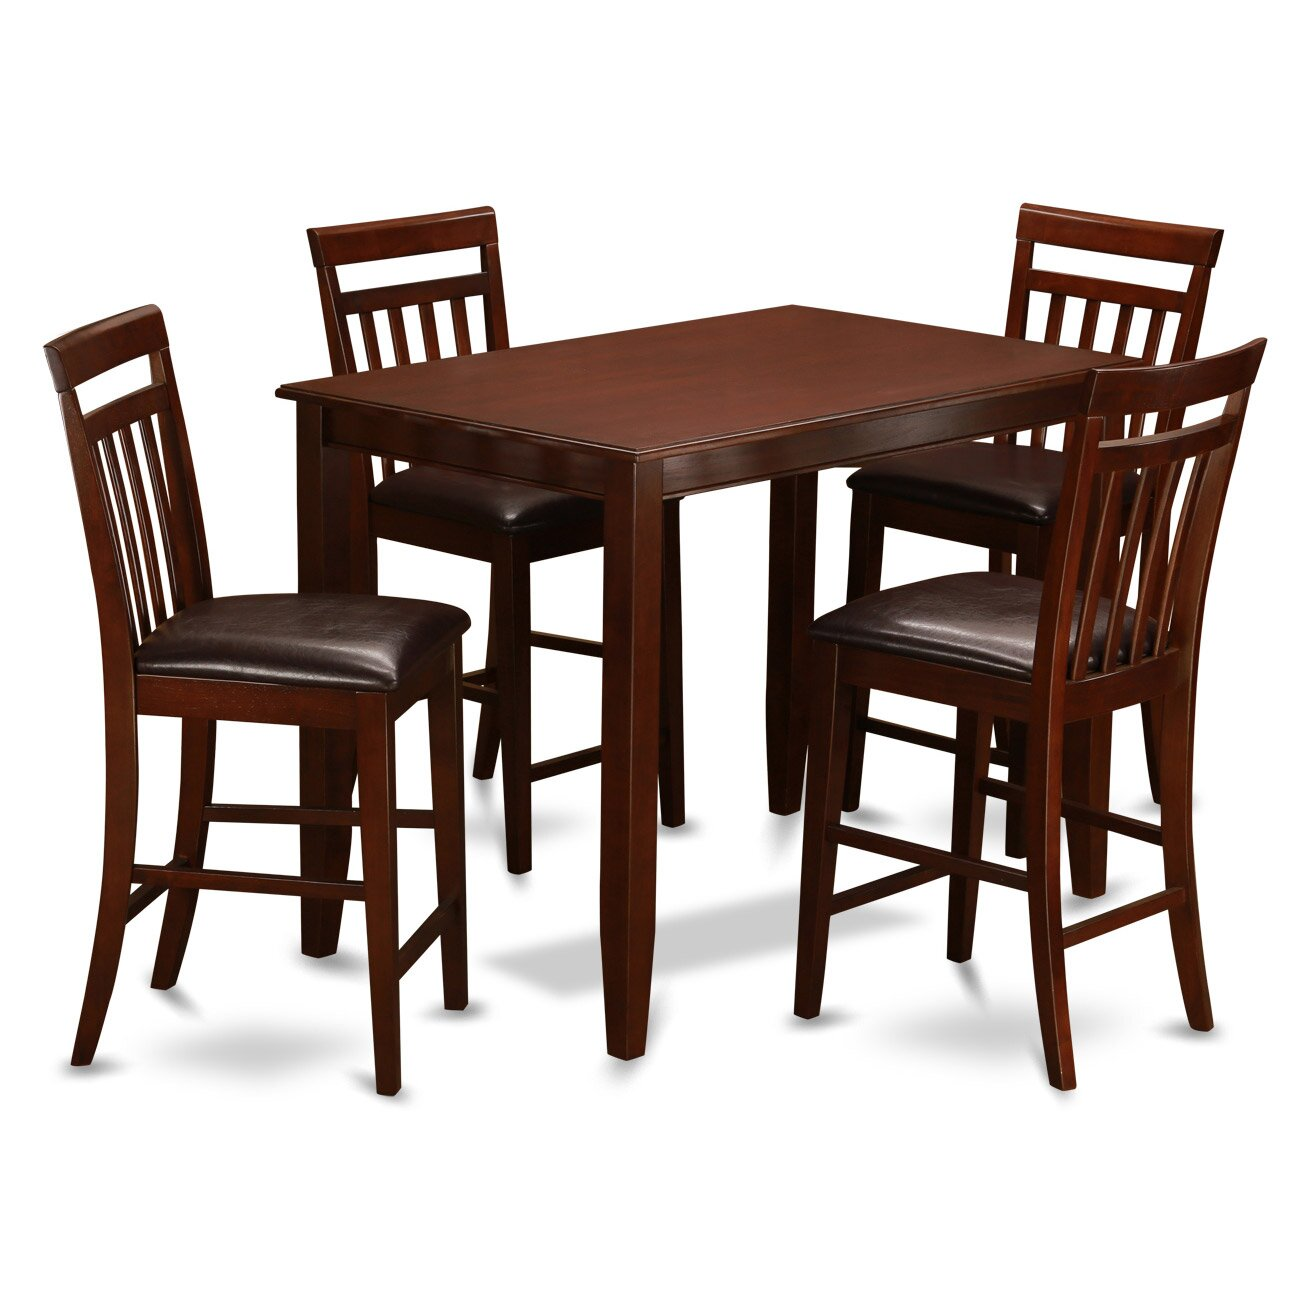 Dining Furniture Outlet: Buckland 5 Piece Counter Height Dining Set